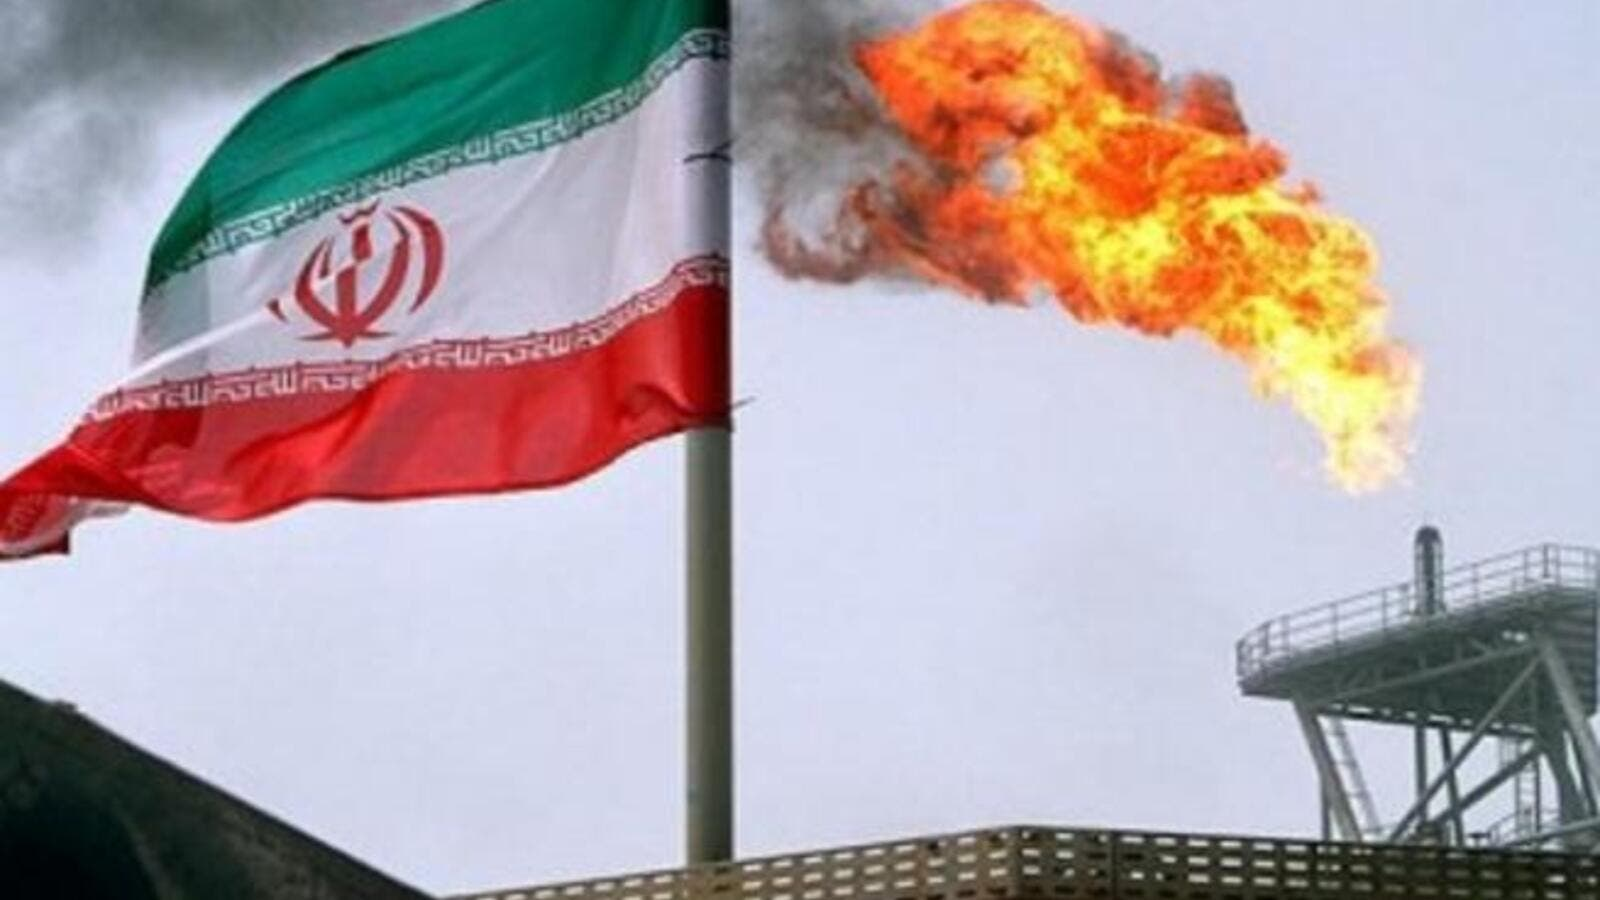 Iran claims it has managed to bypass Western sanctions on its oil industry